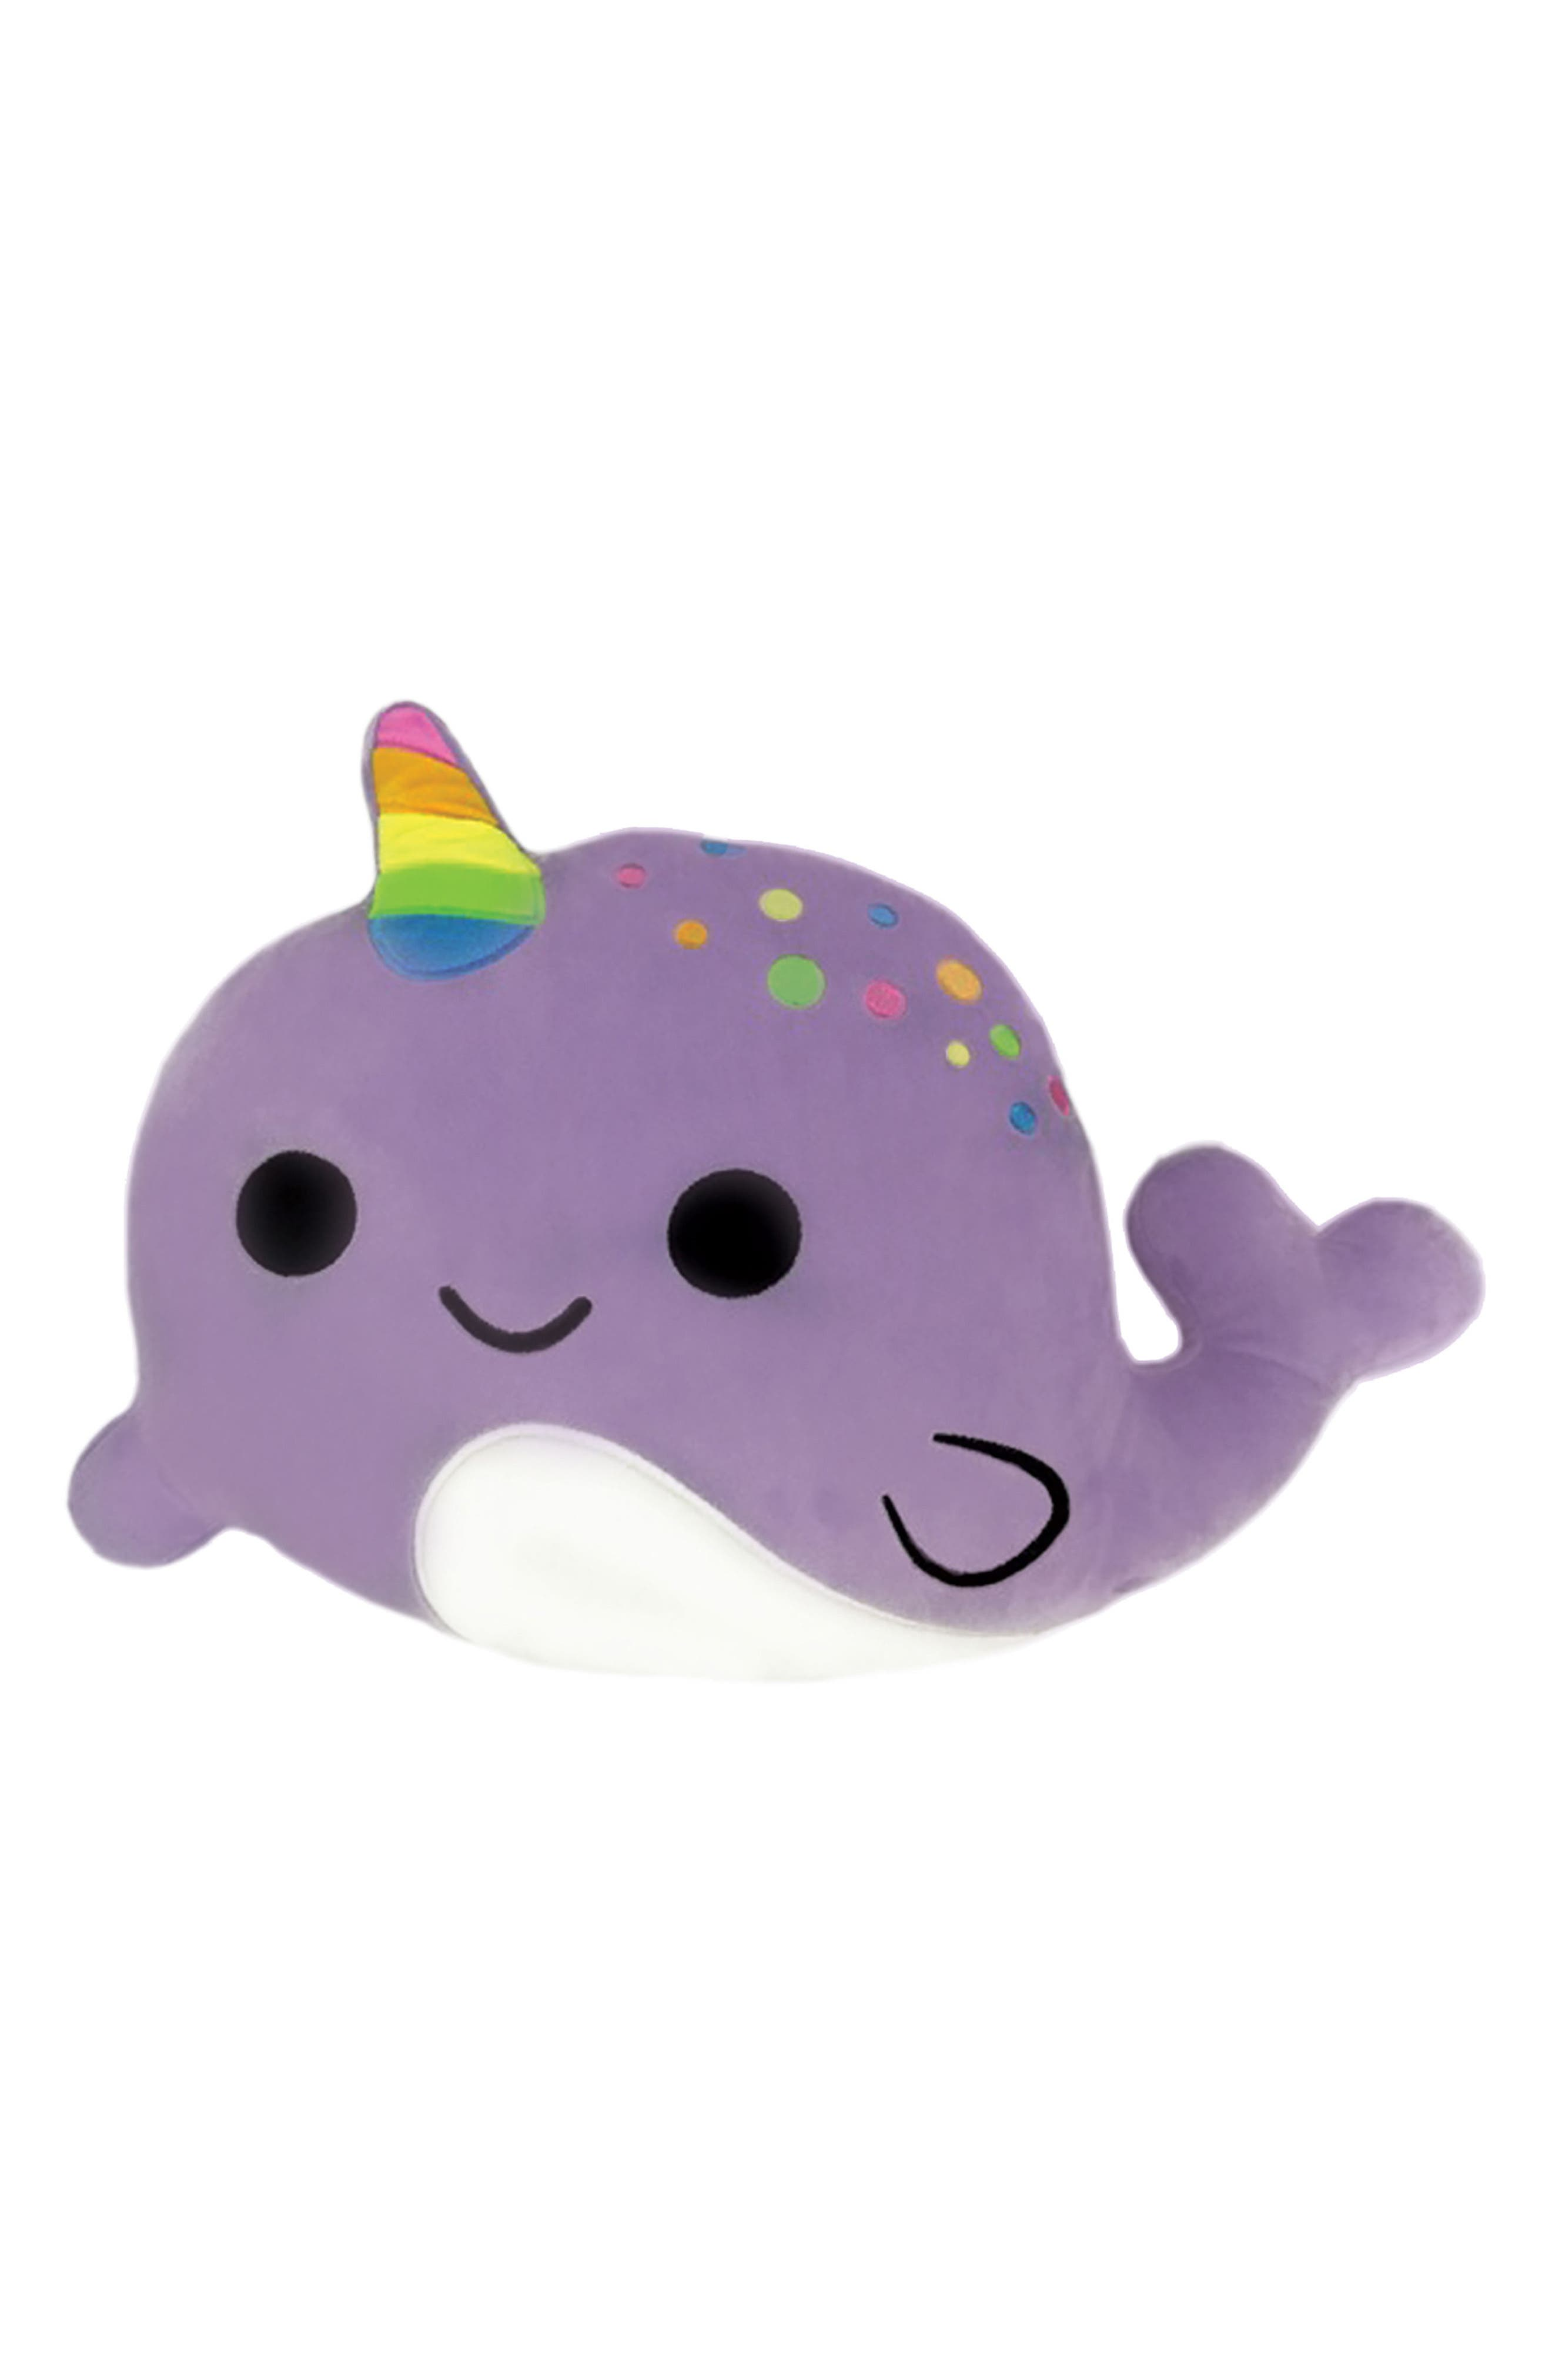 Scented Narwhal Pillow,                             Main thumbnail 1, color,                             500